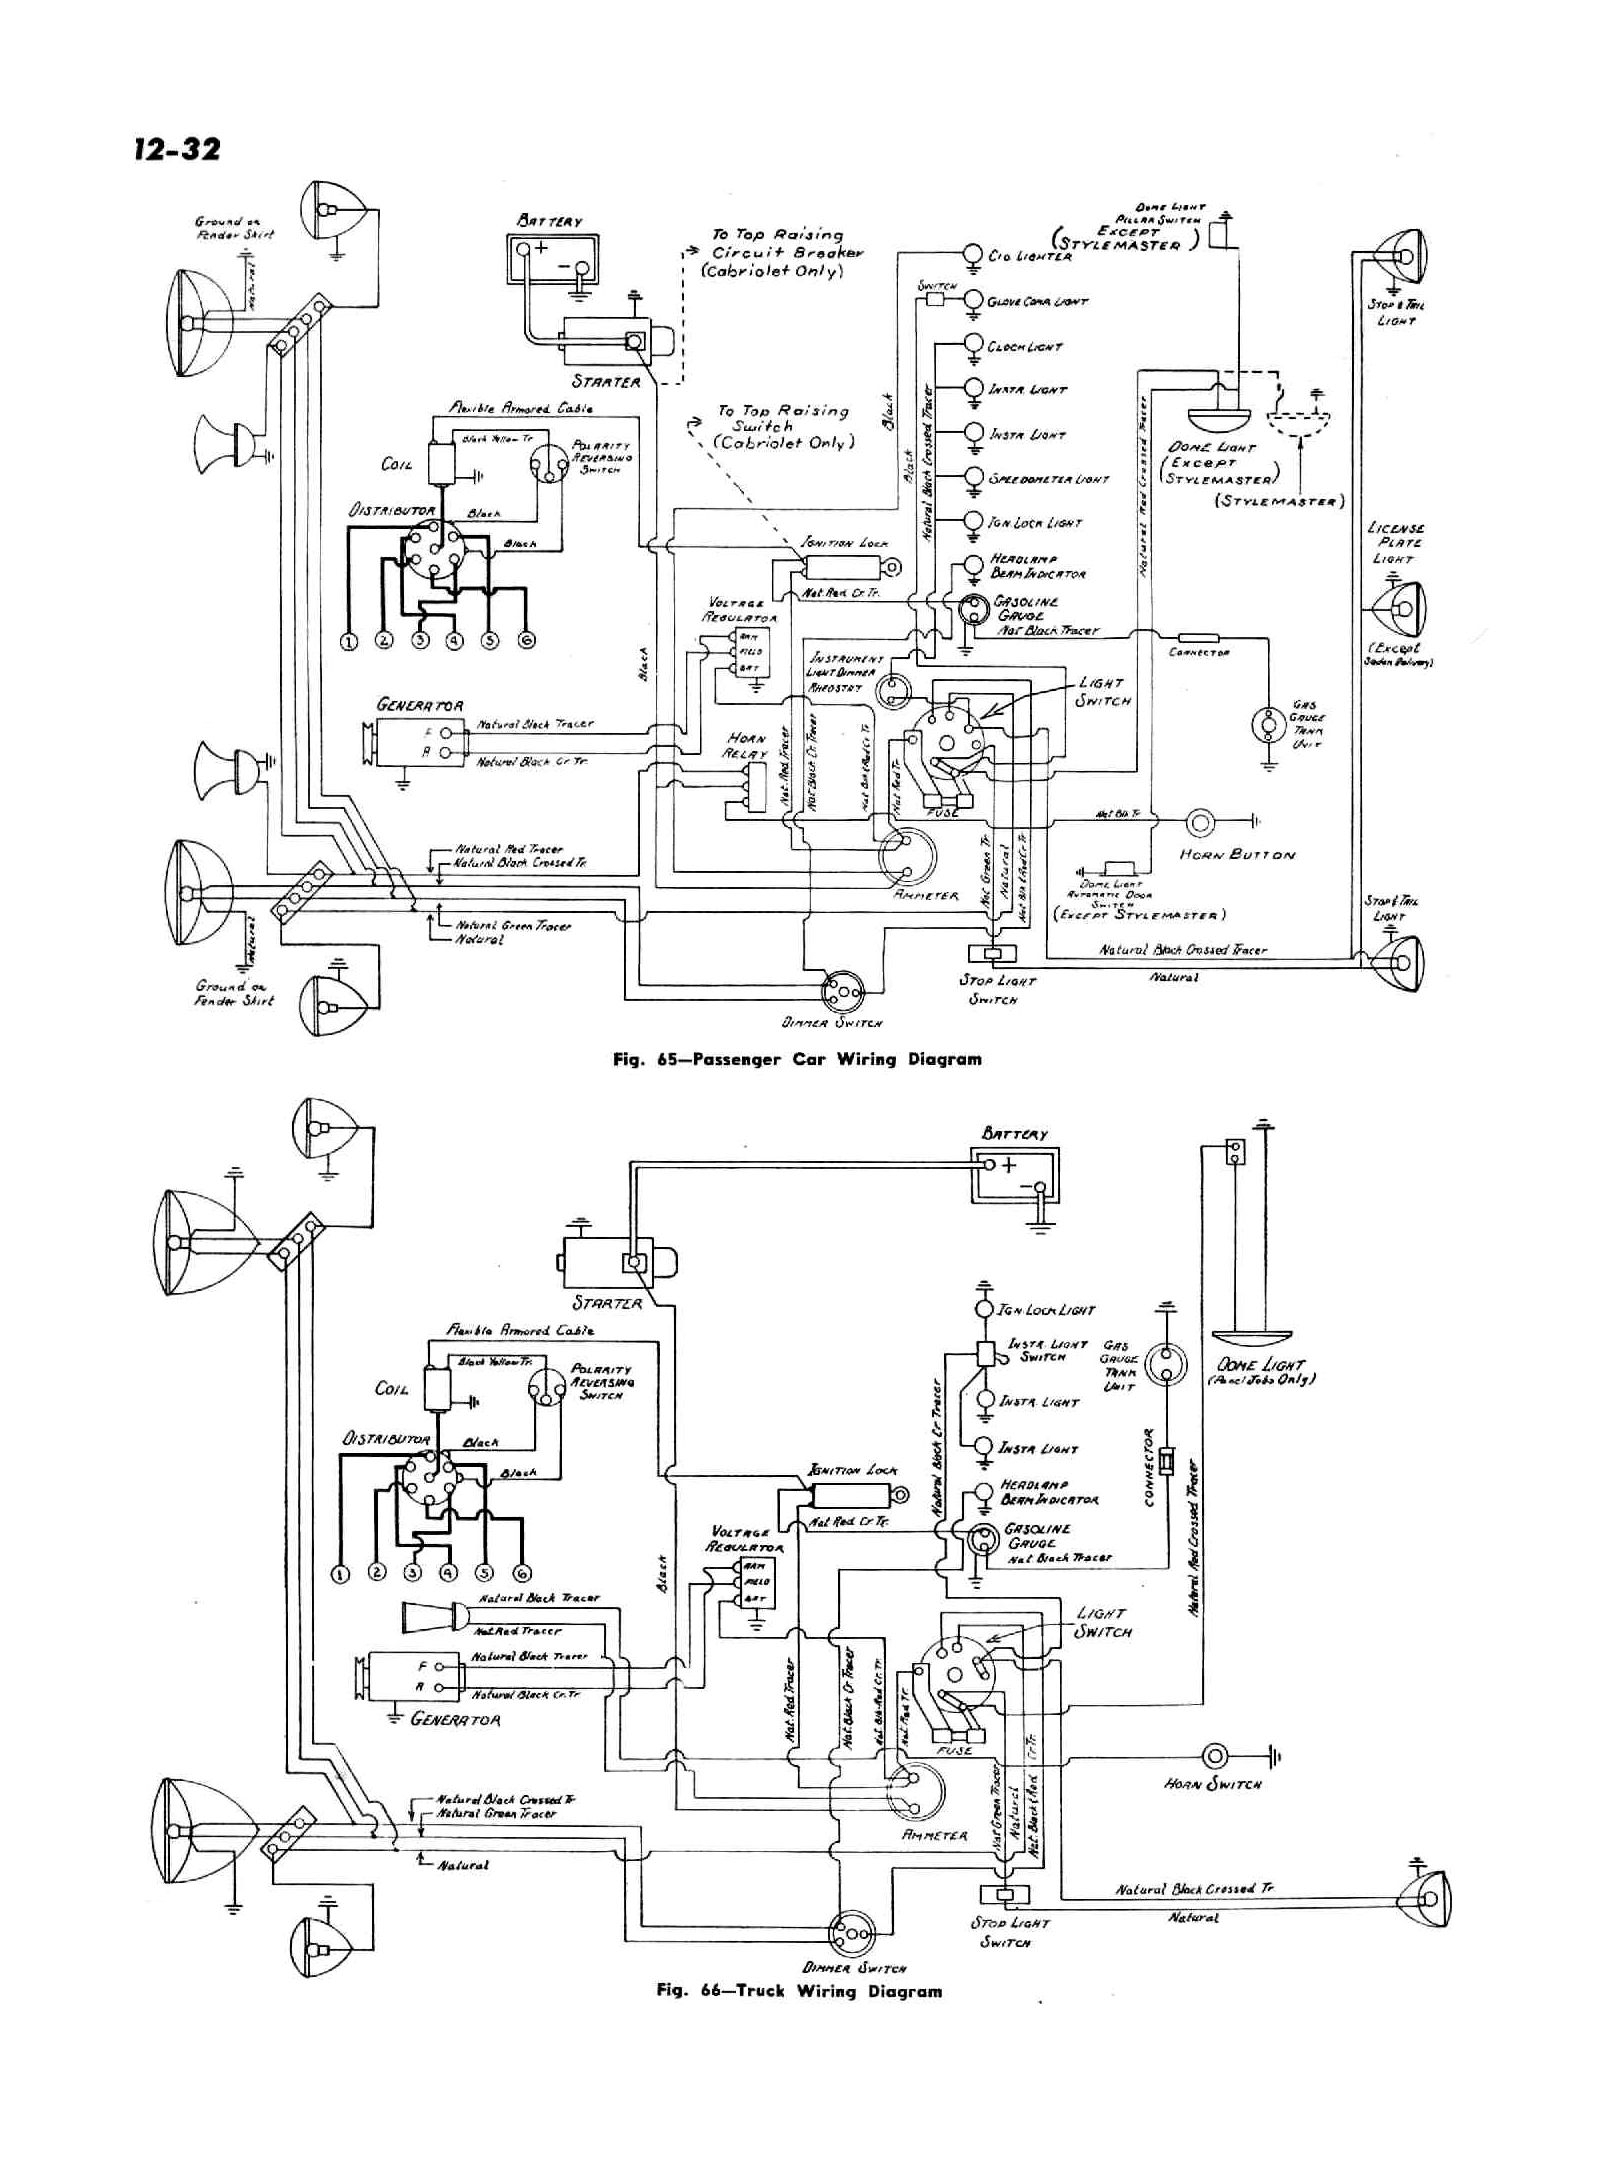 chevy wiring diagrams with 6 volt generator wiring diagram?resize\=665%2C899\&ssl\=1 ford 6000 wiring diagram wiring diagram simonand 1988 ford f250 wiring diagrams at soozxer.org